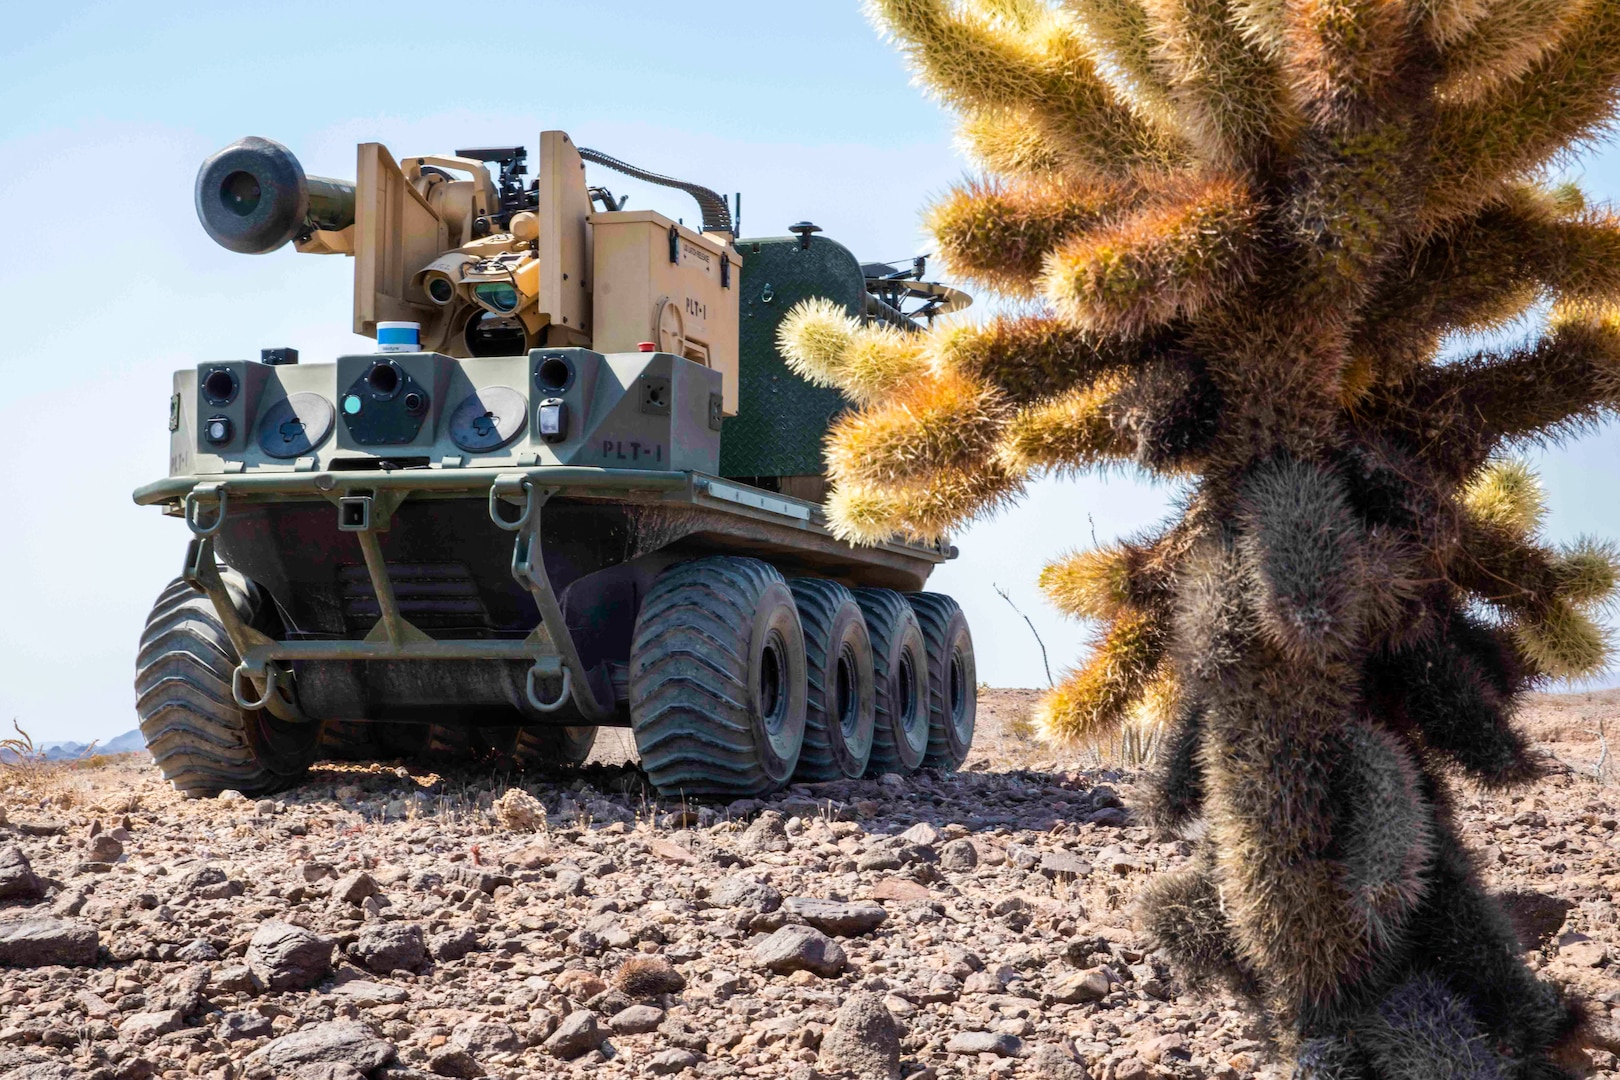 Autonomous system Origin prepares for practice run on August 20, 2020, during Project Convergence capstone event at Yuma Proving Ground, Arizona (U.S. Army/Carlos Cuebas Fantauzzi)